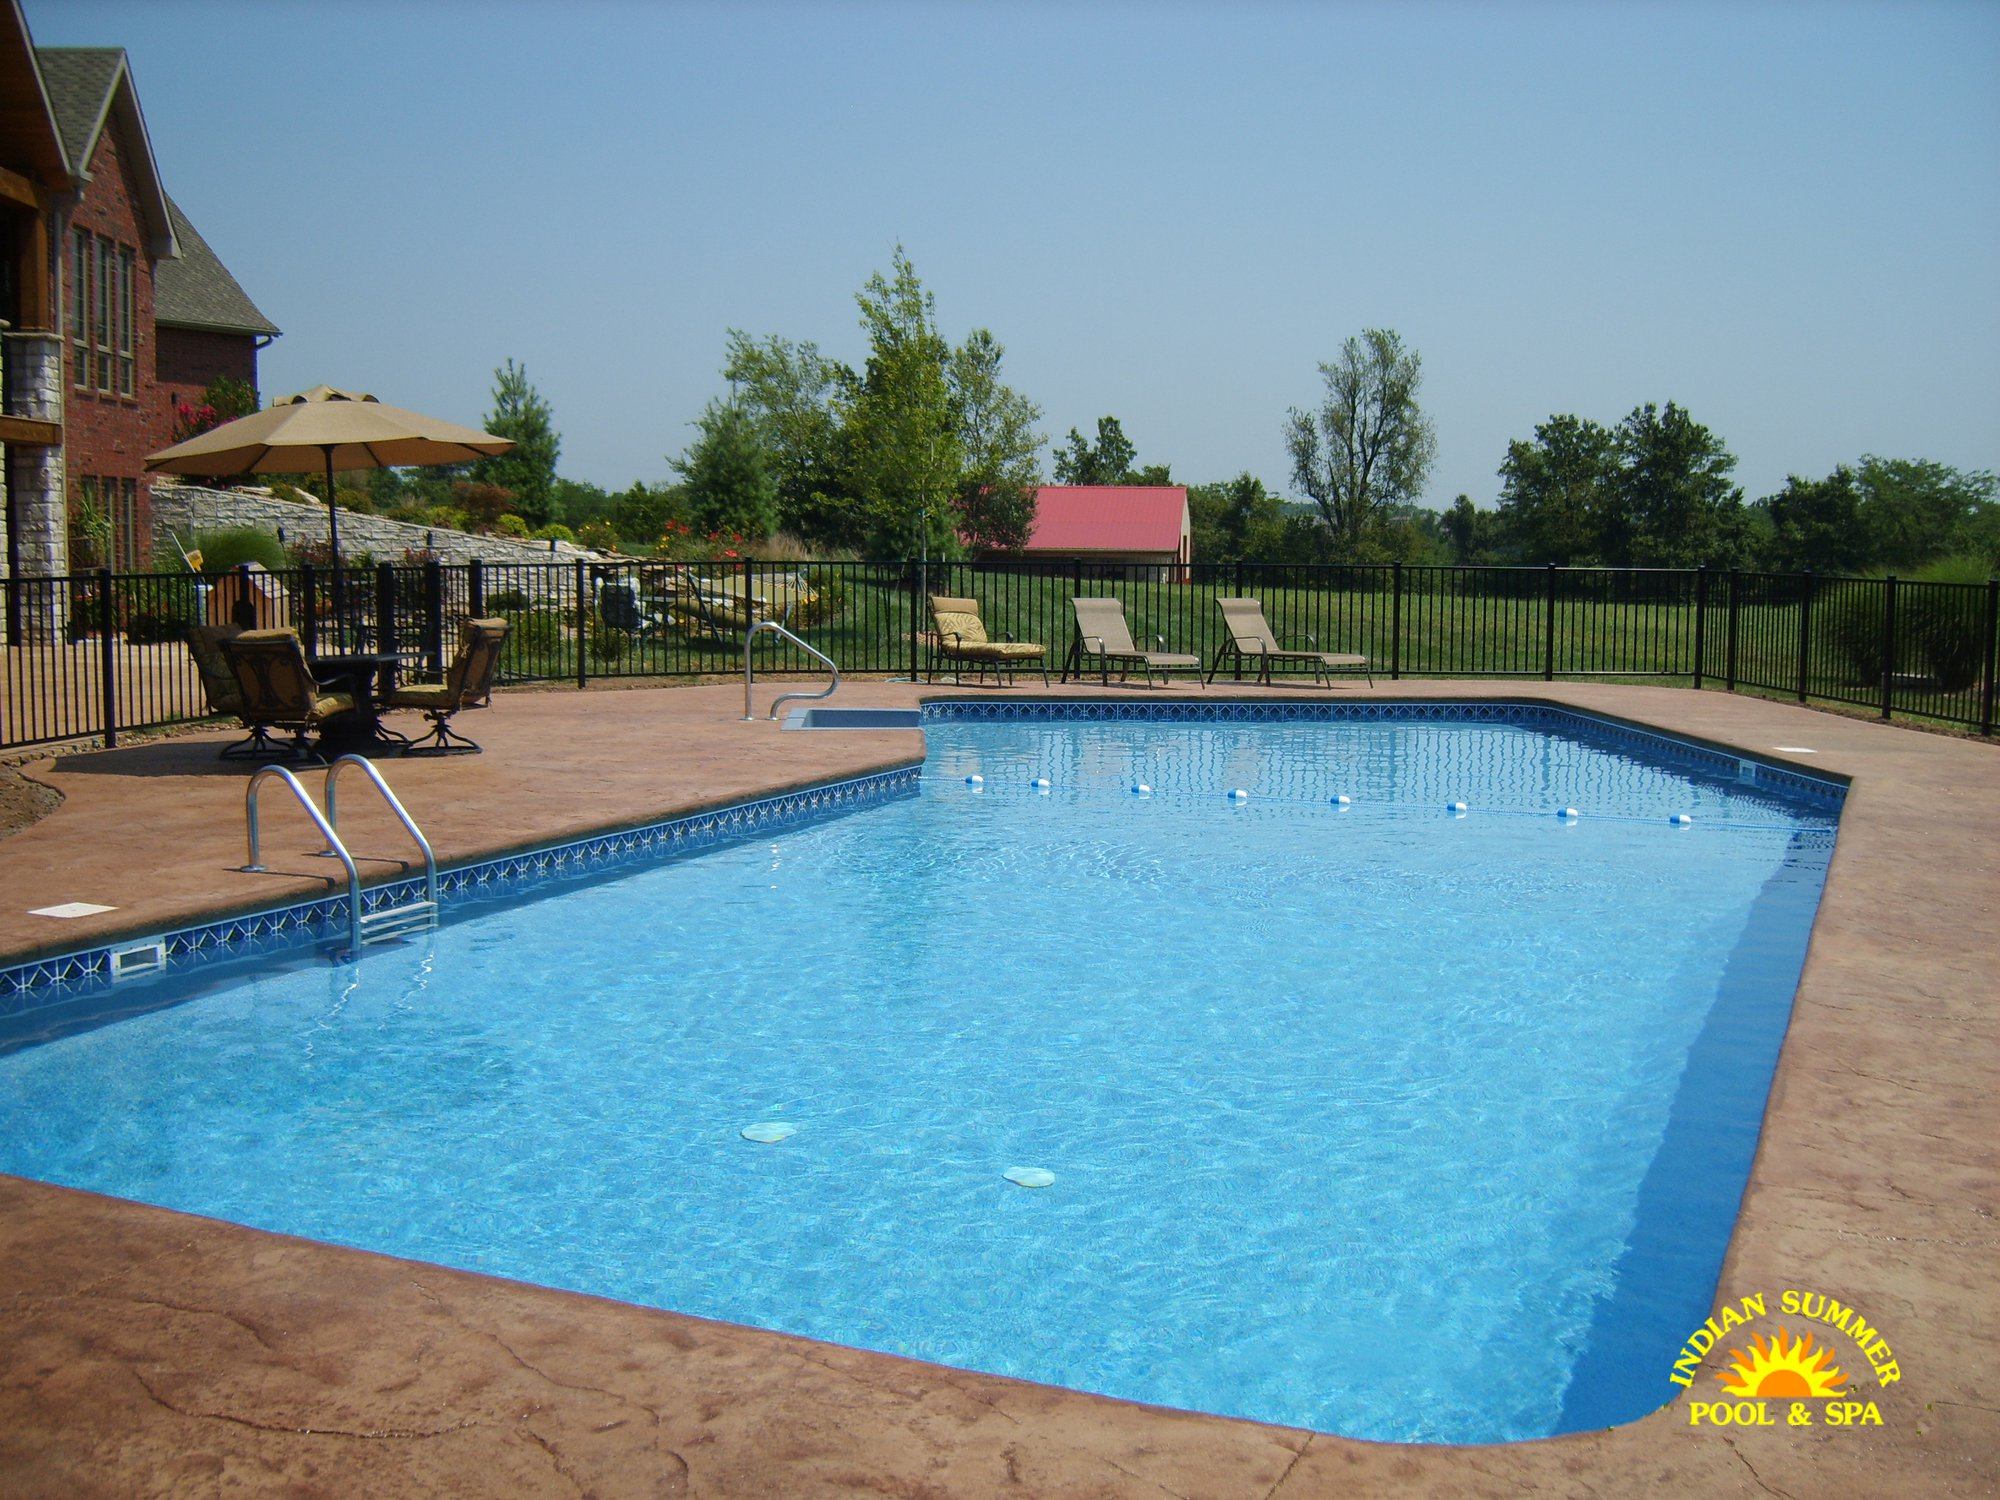 hybrid pools springfield mo indian summer pool and spa. Black Bedroom Furniture Sets. Home Design Ideas